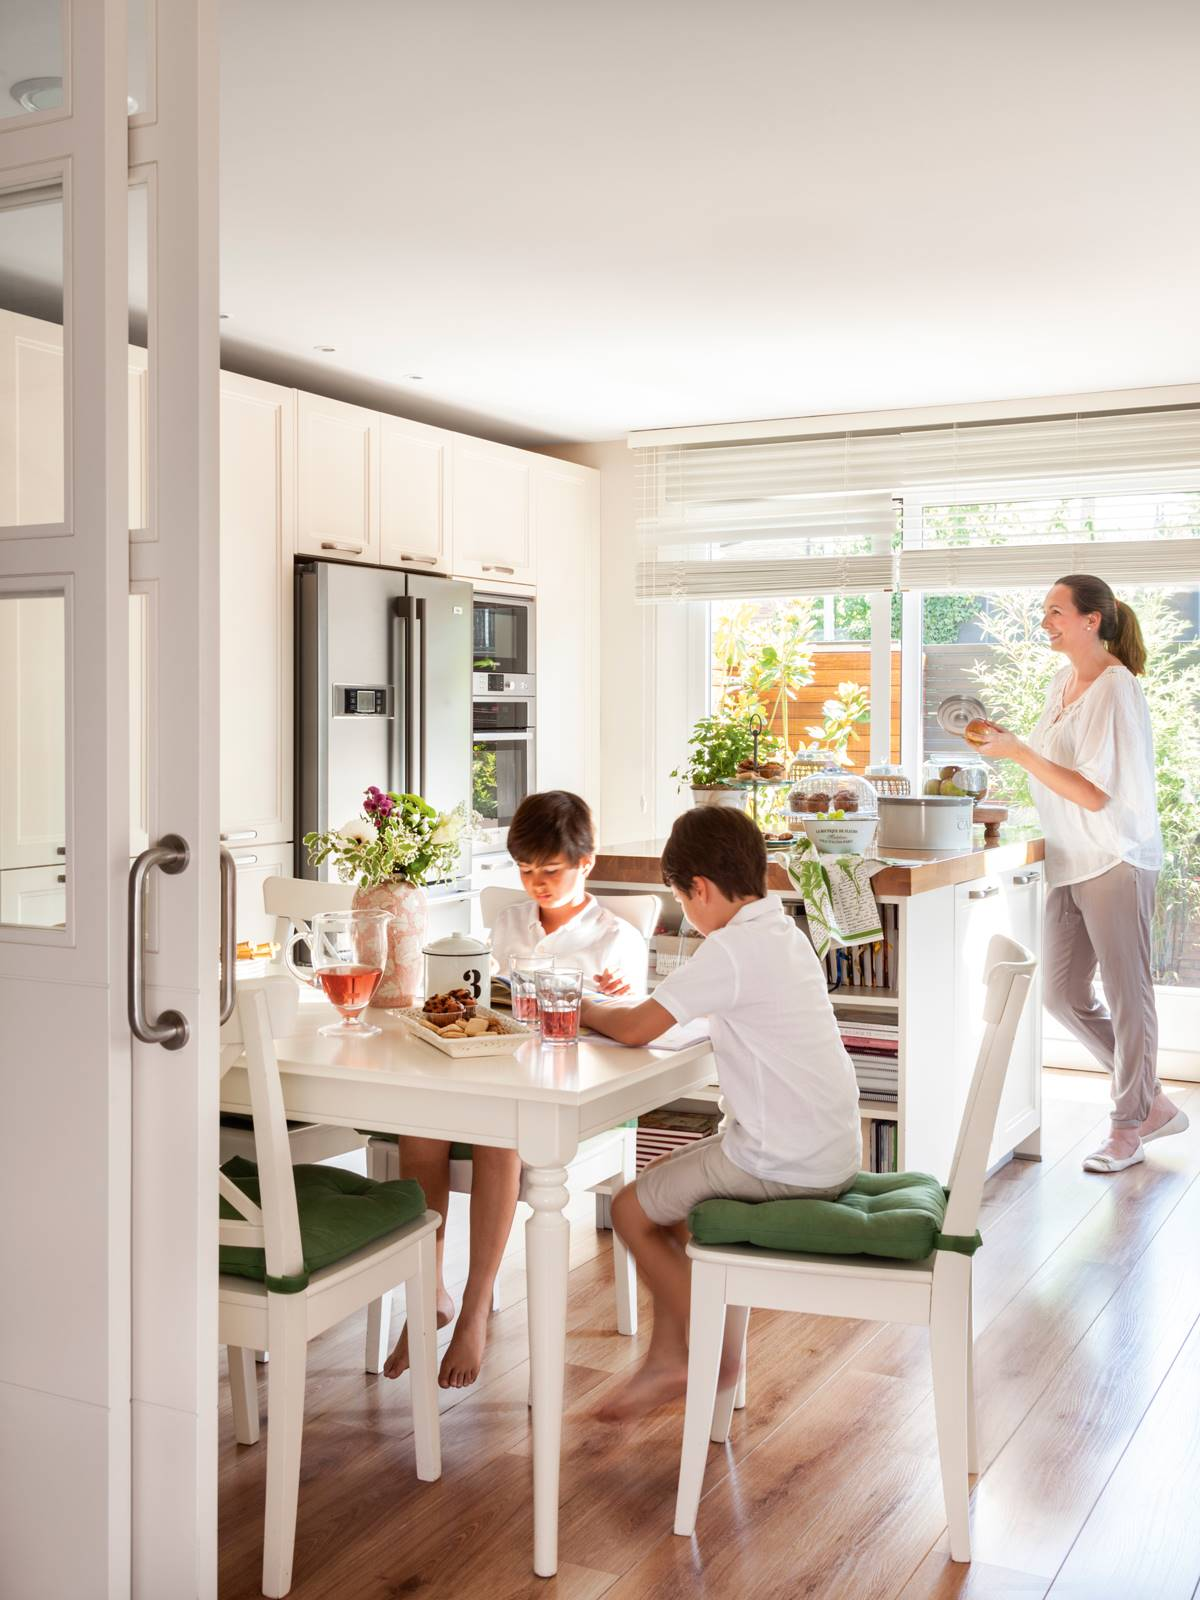 00410658. A kitchen to share with the family